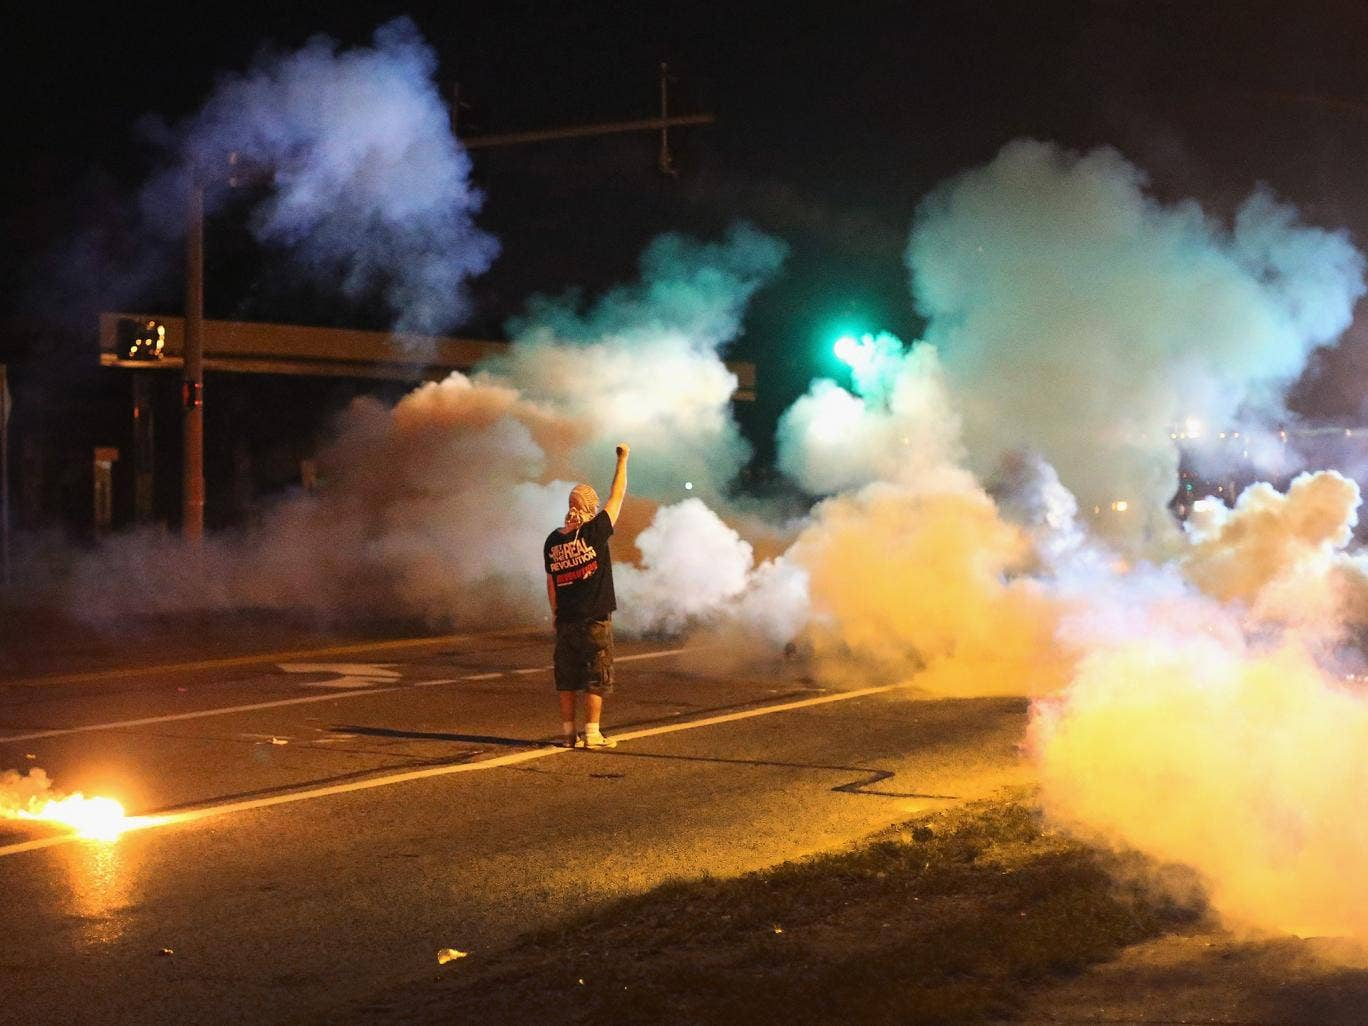 A demonstrator, protesting the shooting death of teenager Michael Brown, stands his ground as police fire tear gas in Ferguson